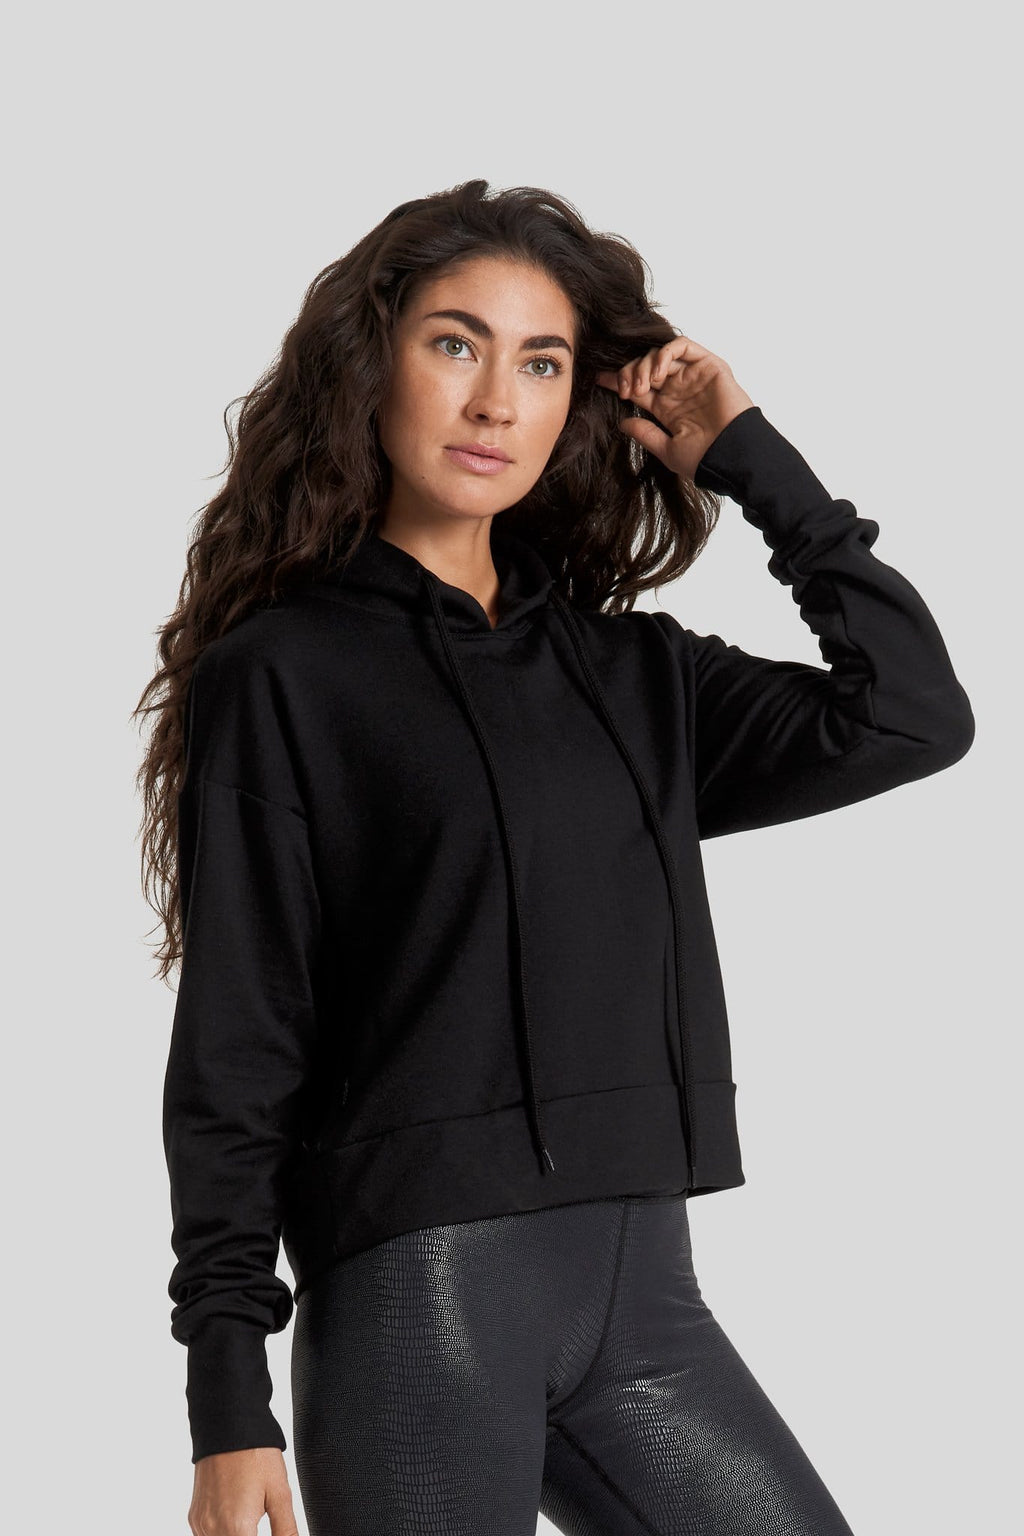 A woman wearing an all black hoodie and shiny textured leggings